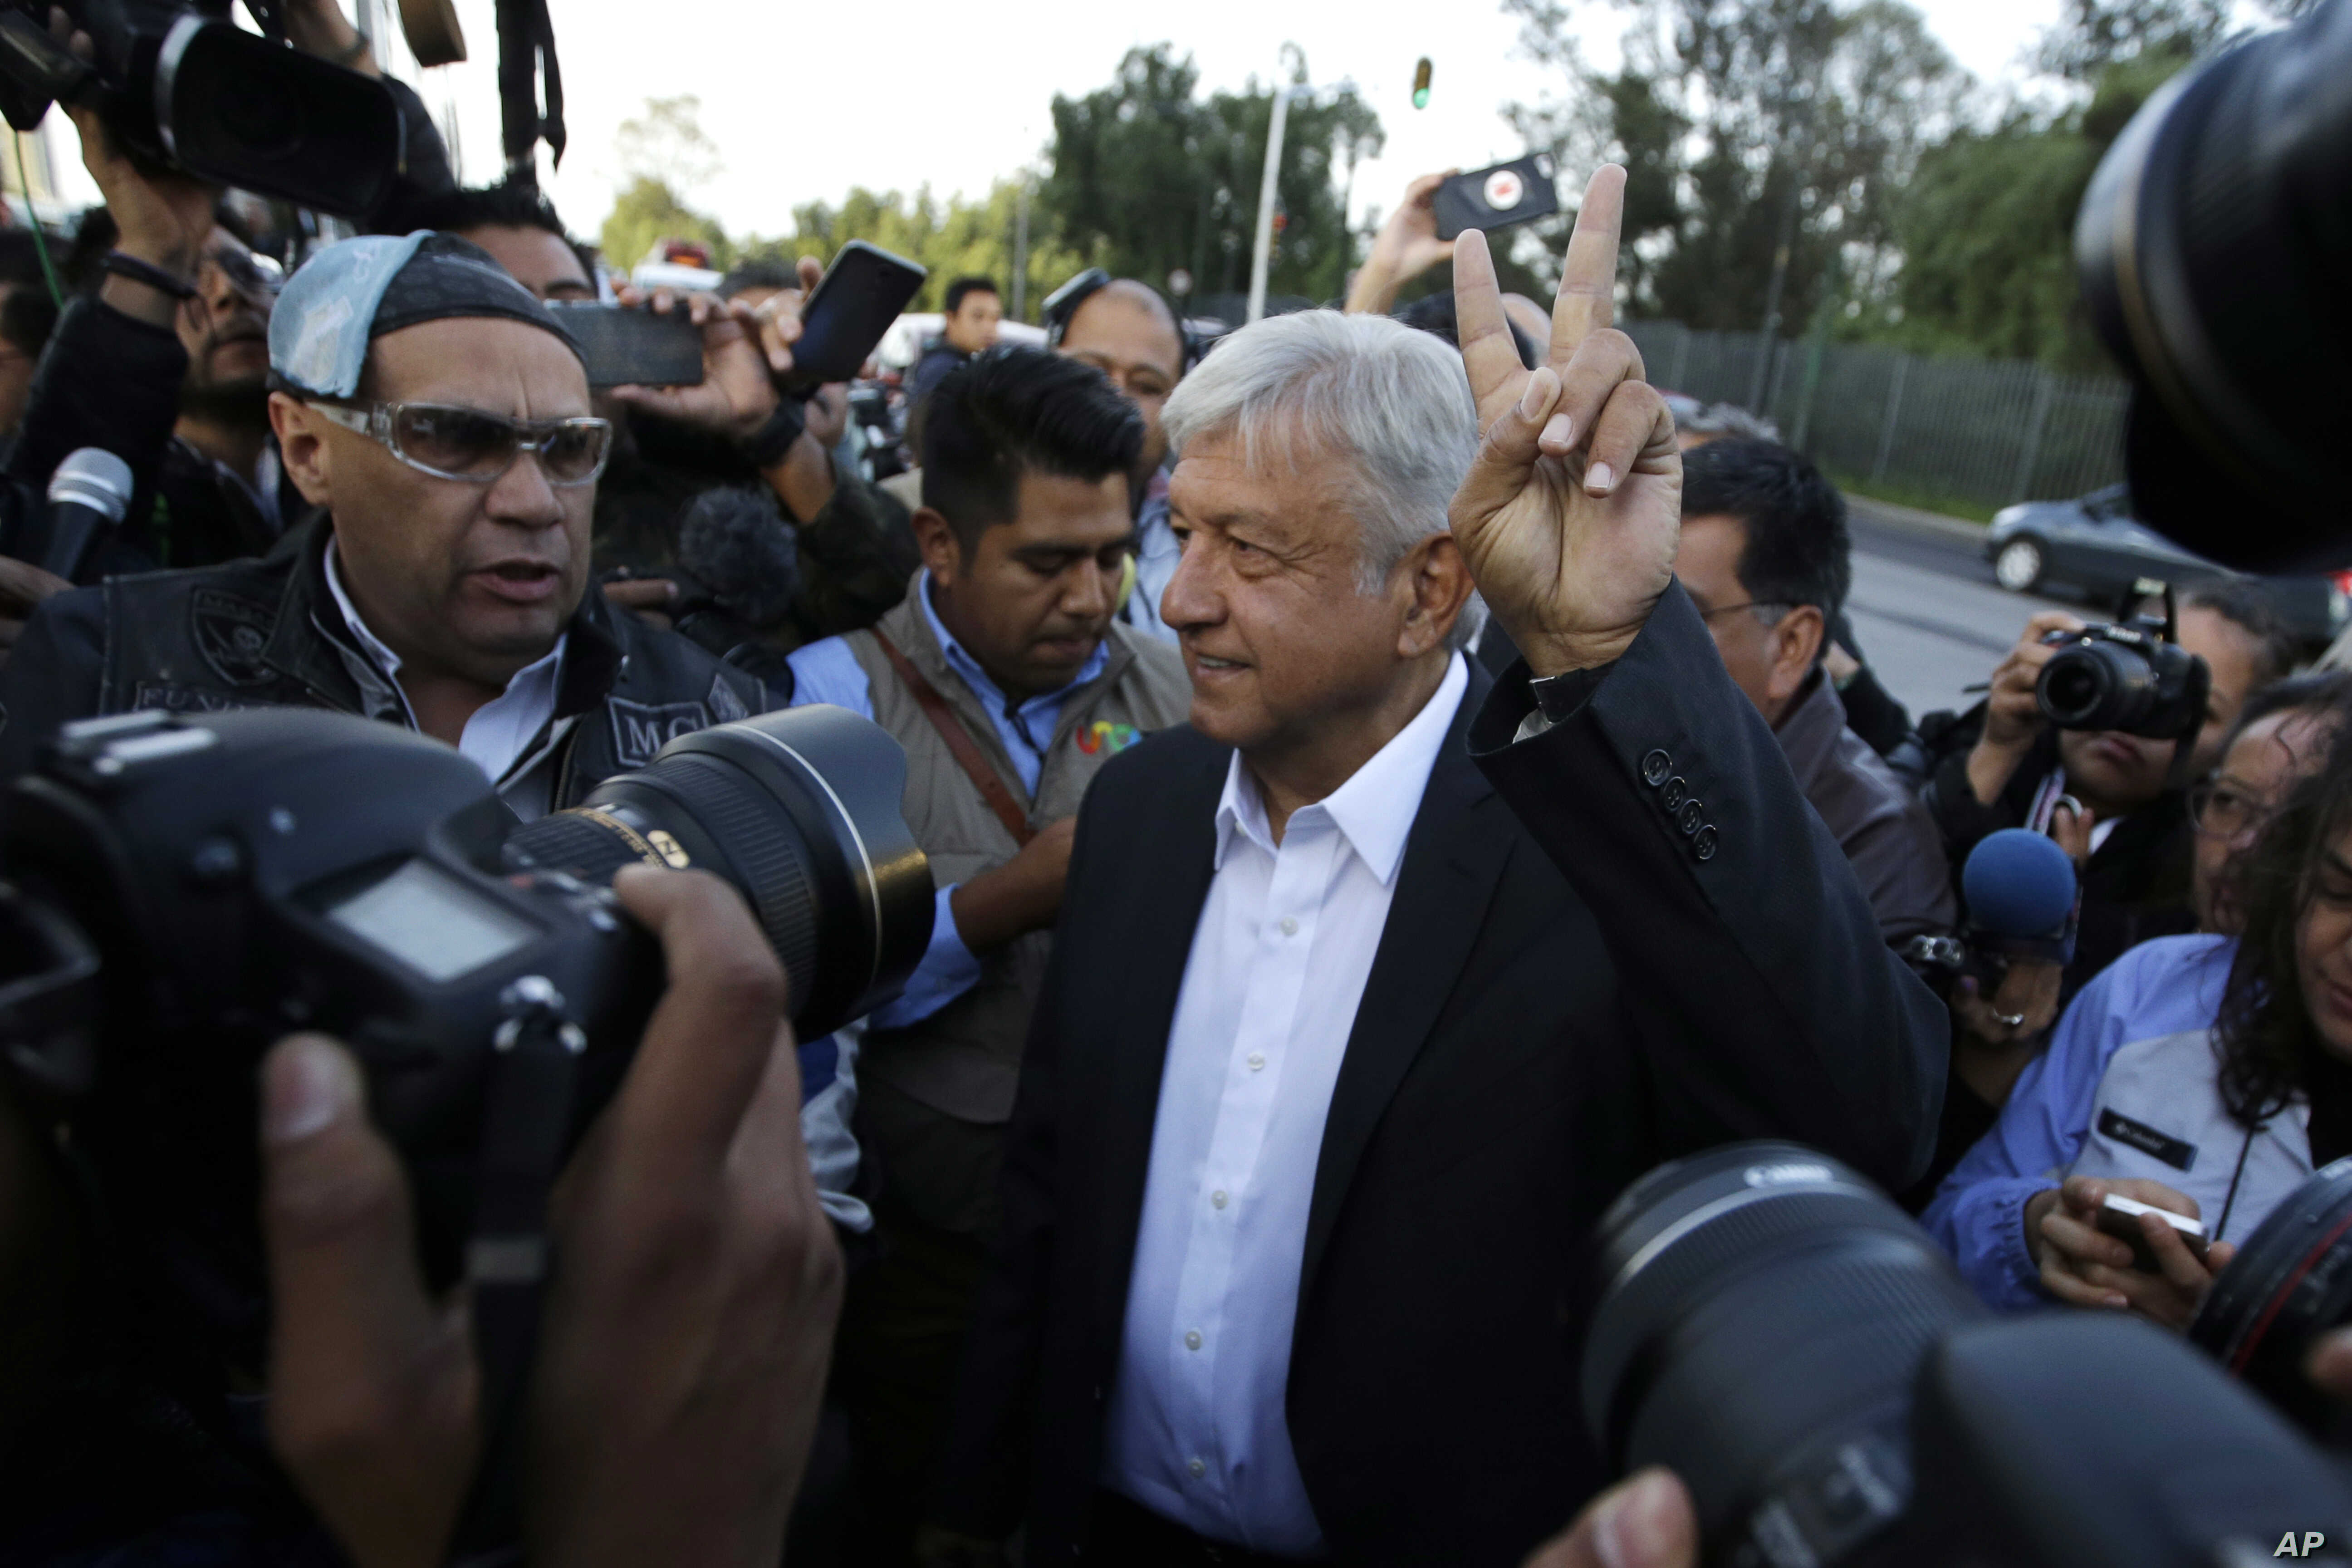 Presidential candidate Andres Manuel Lopez Obrador, of the MORENA party, arrives to a polling station during general elections in Mexico City, Mexico,  July 1, 2018.